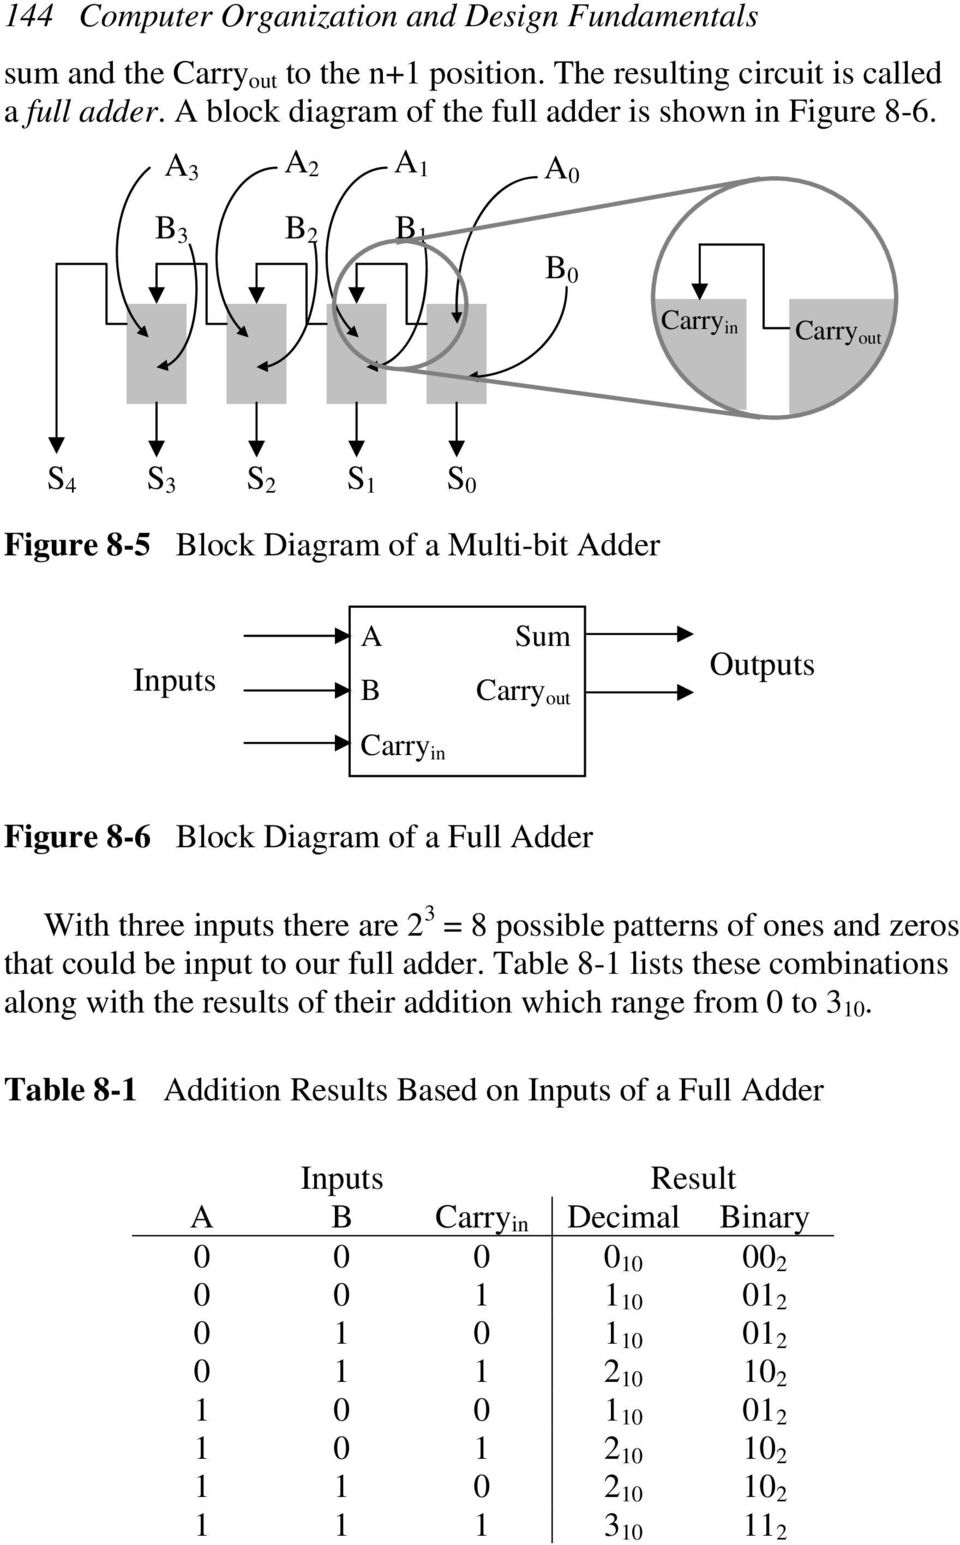 3 3 2 2 Carry in Carry out S 4 S 3 S 2 S S Figure 8-5 lock Diagram of a Multi-bit dder Inputs Sum Carry out Outputs Carry in Figure 8-6 lock Diagram of a Full dder With